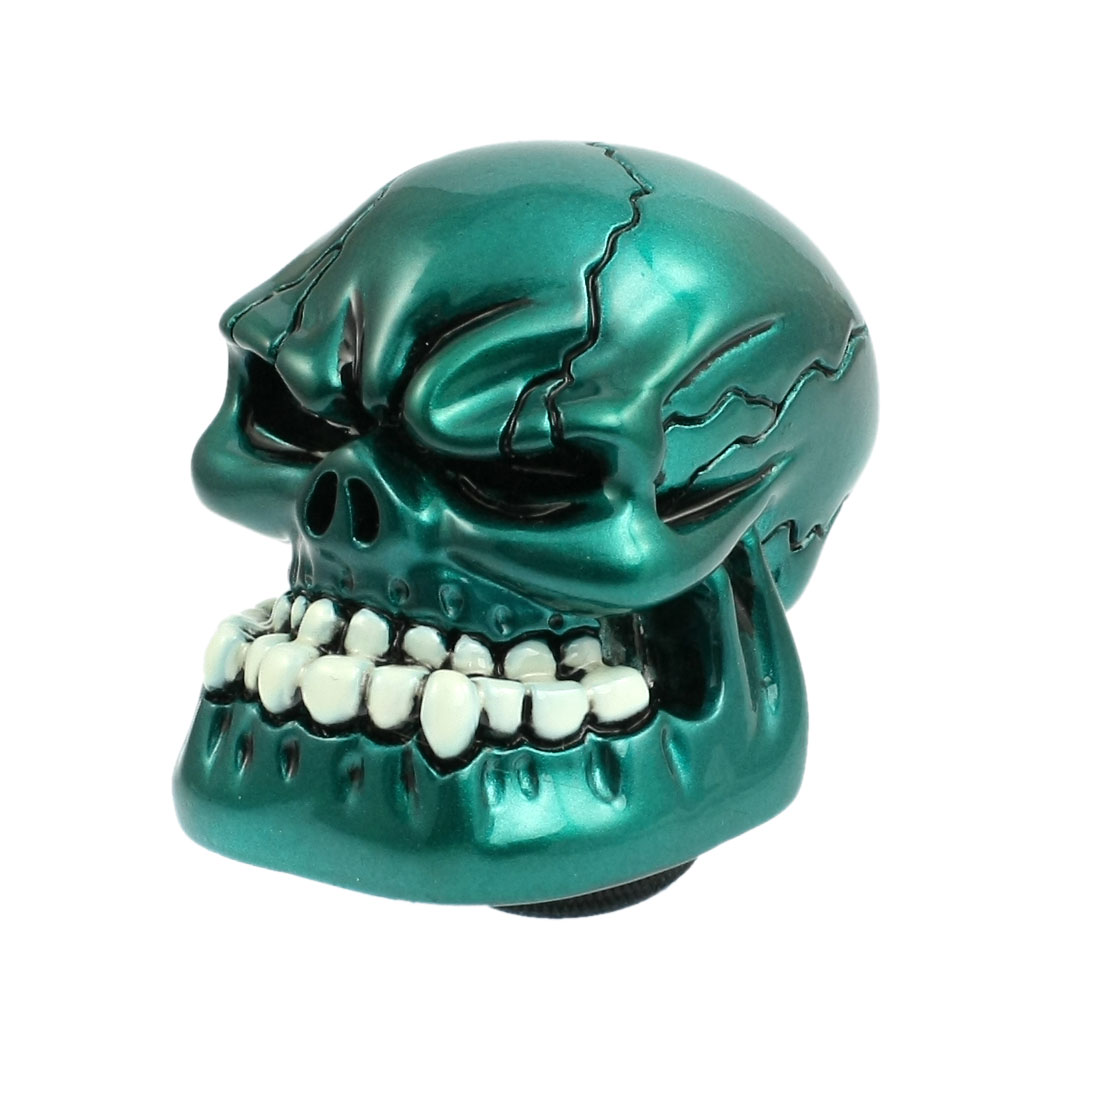 Universal Car Truck Human Wicked Skull Stick Shift Gear Shifter Knob Teal Blue